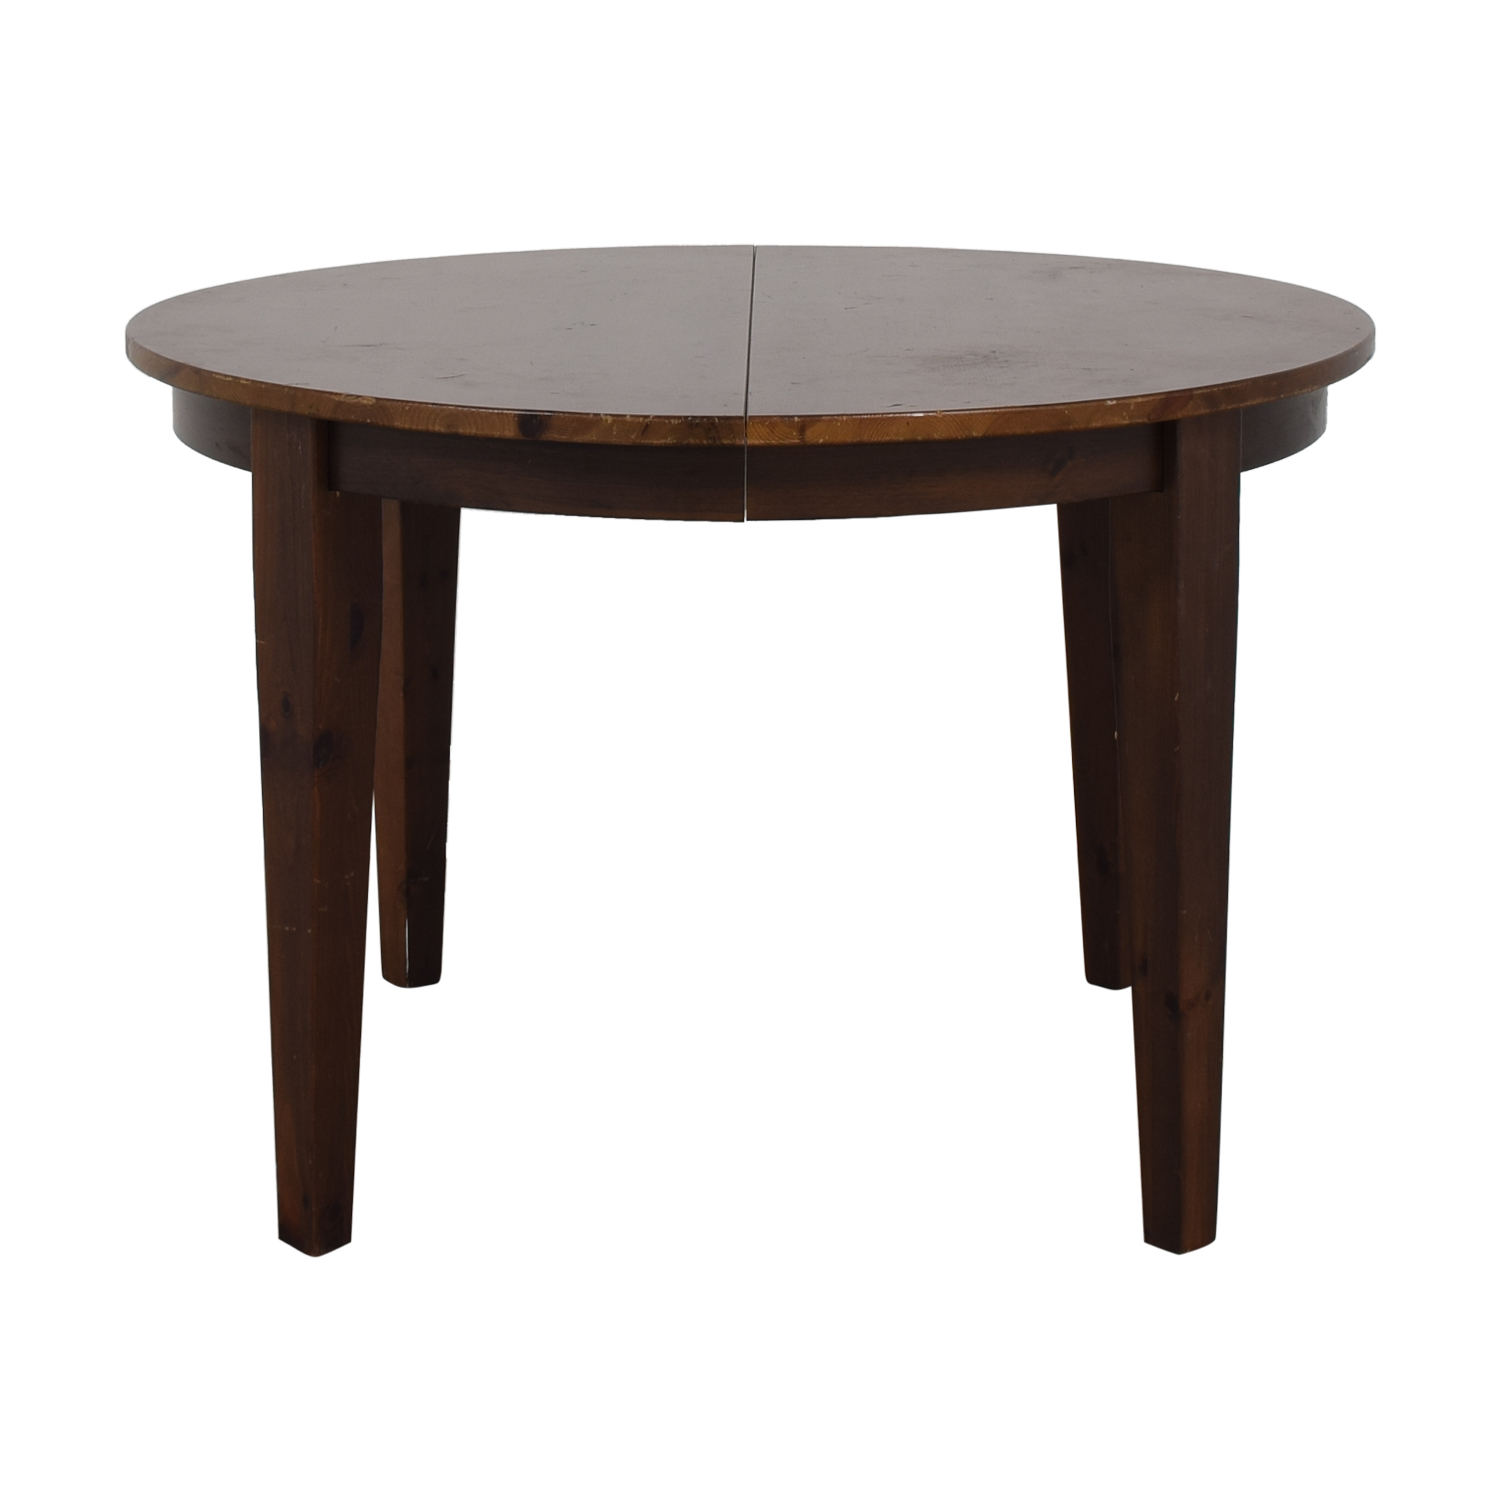 Round Dining Table / Dinner Tables